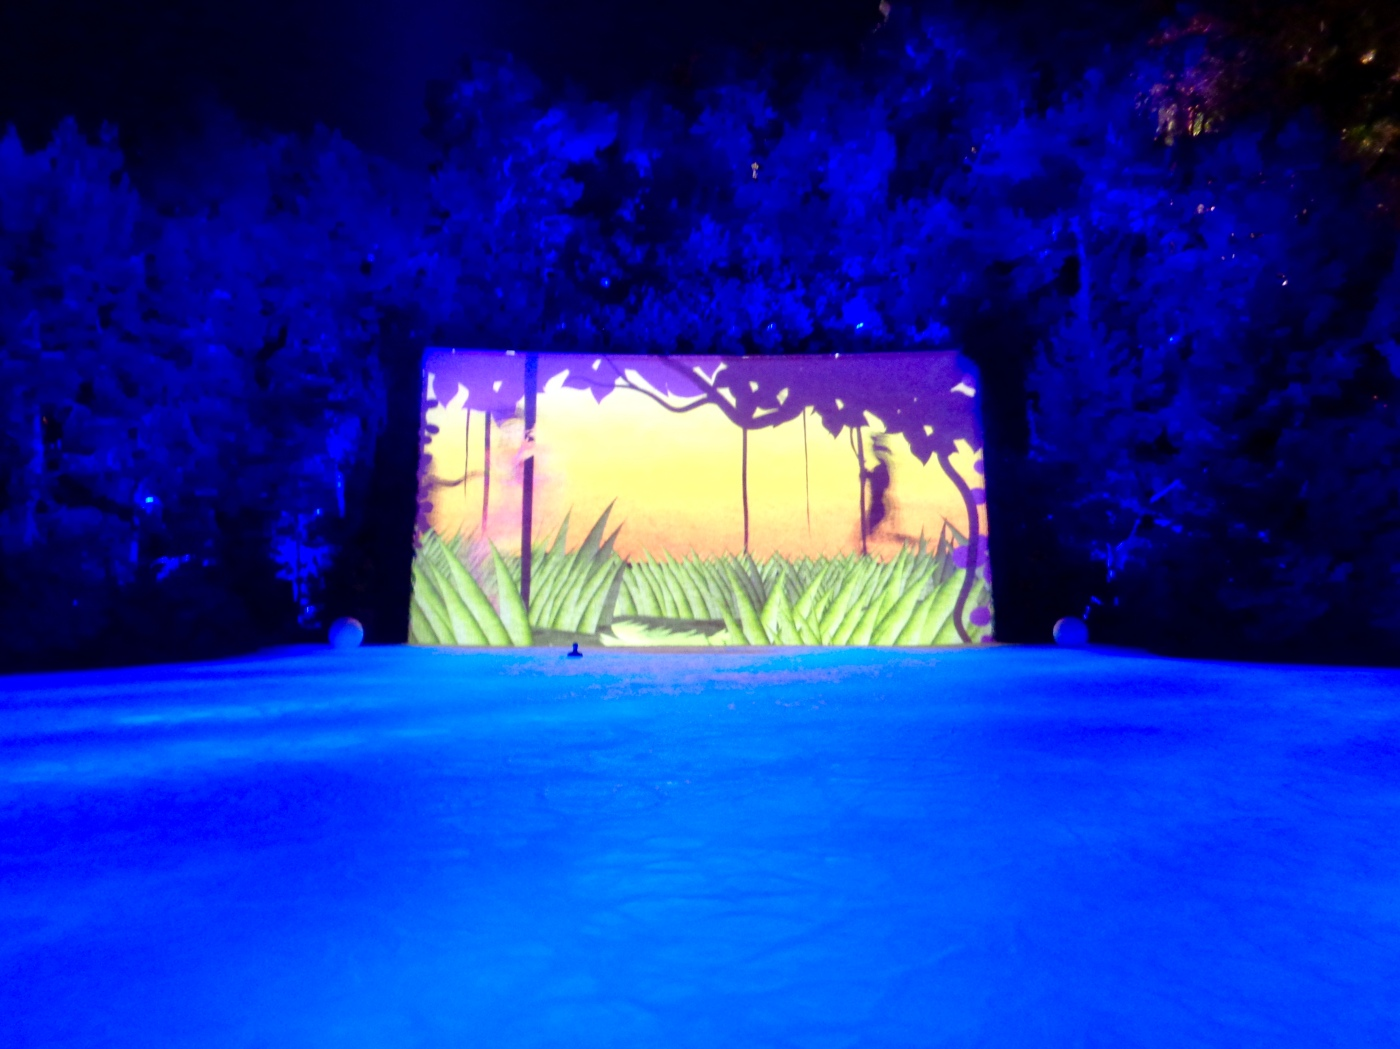 Lake of Dreams at Wynn in Las Vegas, Nevada